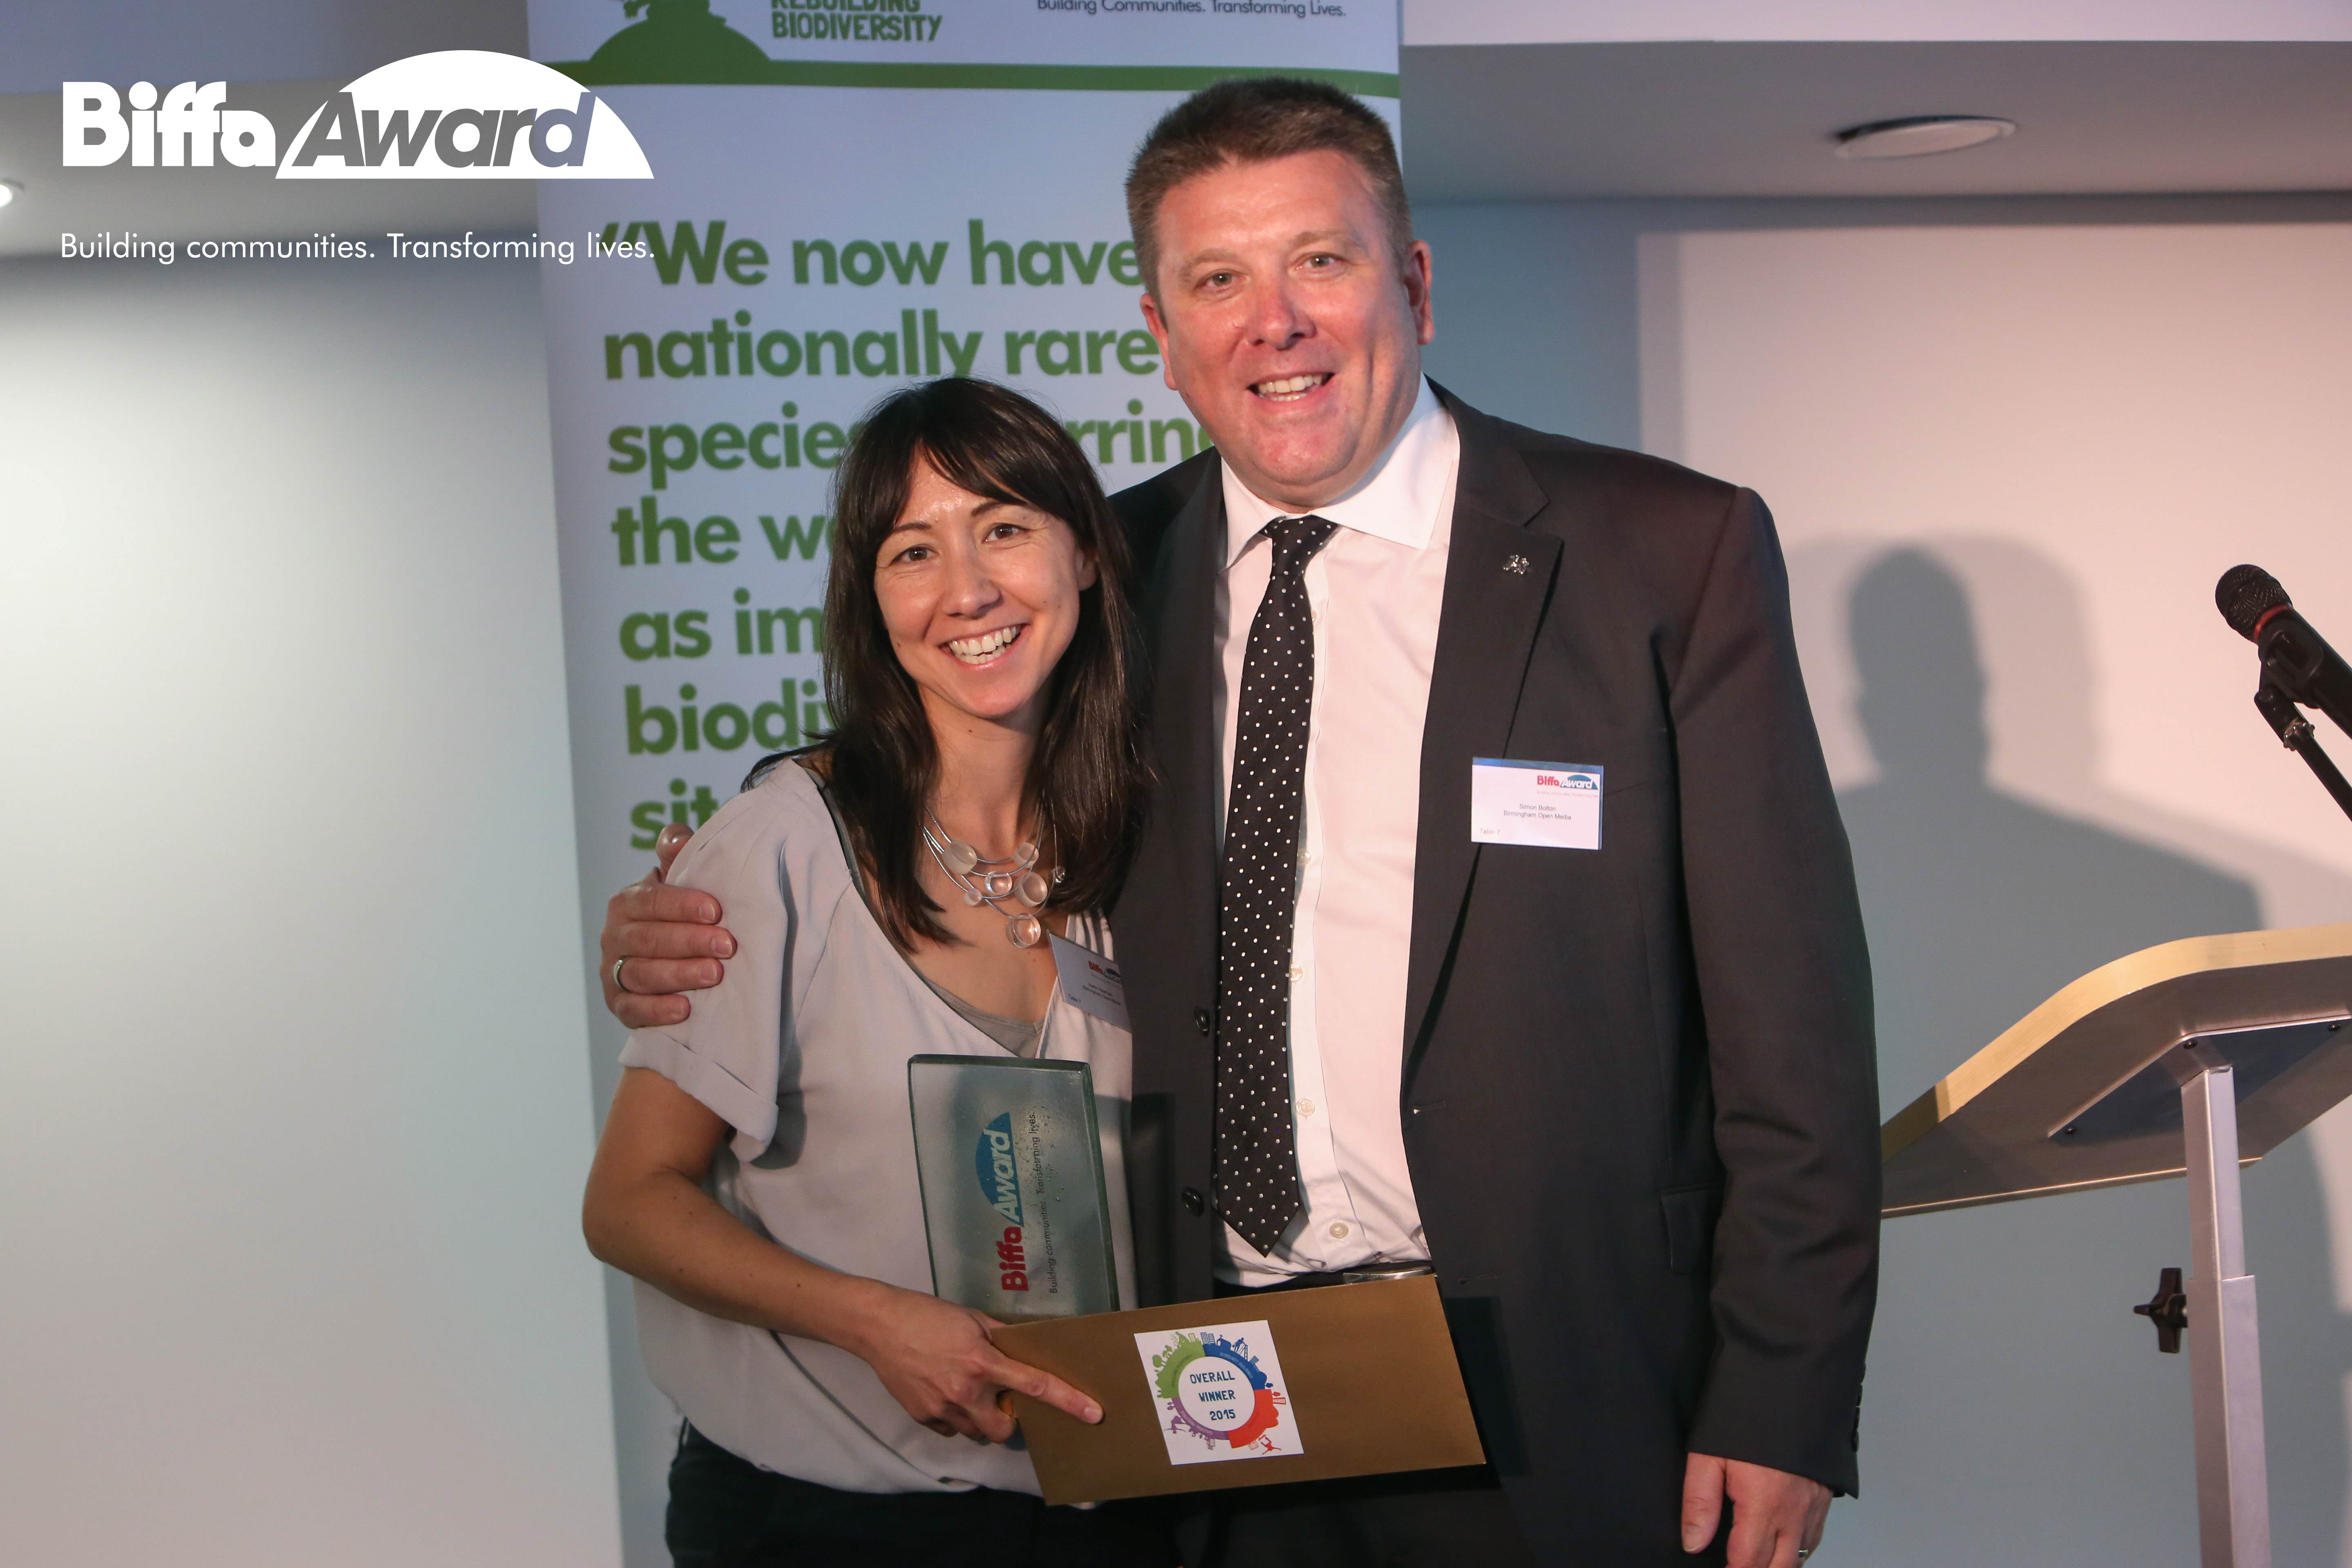 151001_RSWT_BiffaAwards2015_Coventry_DT_235 (1)